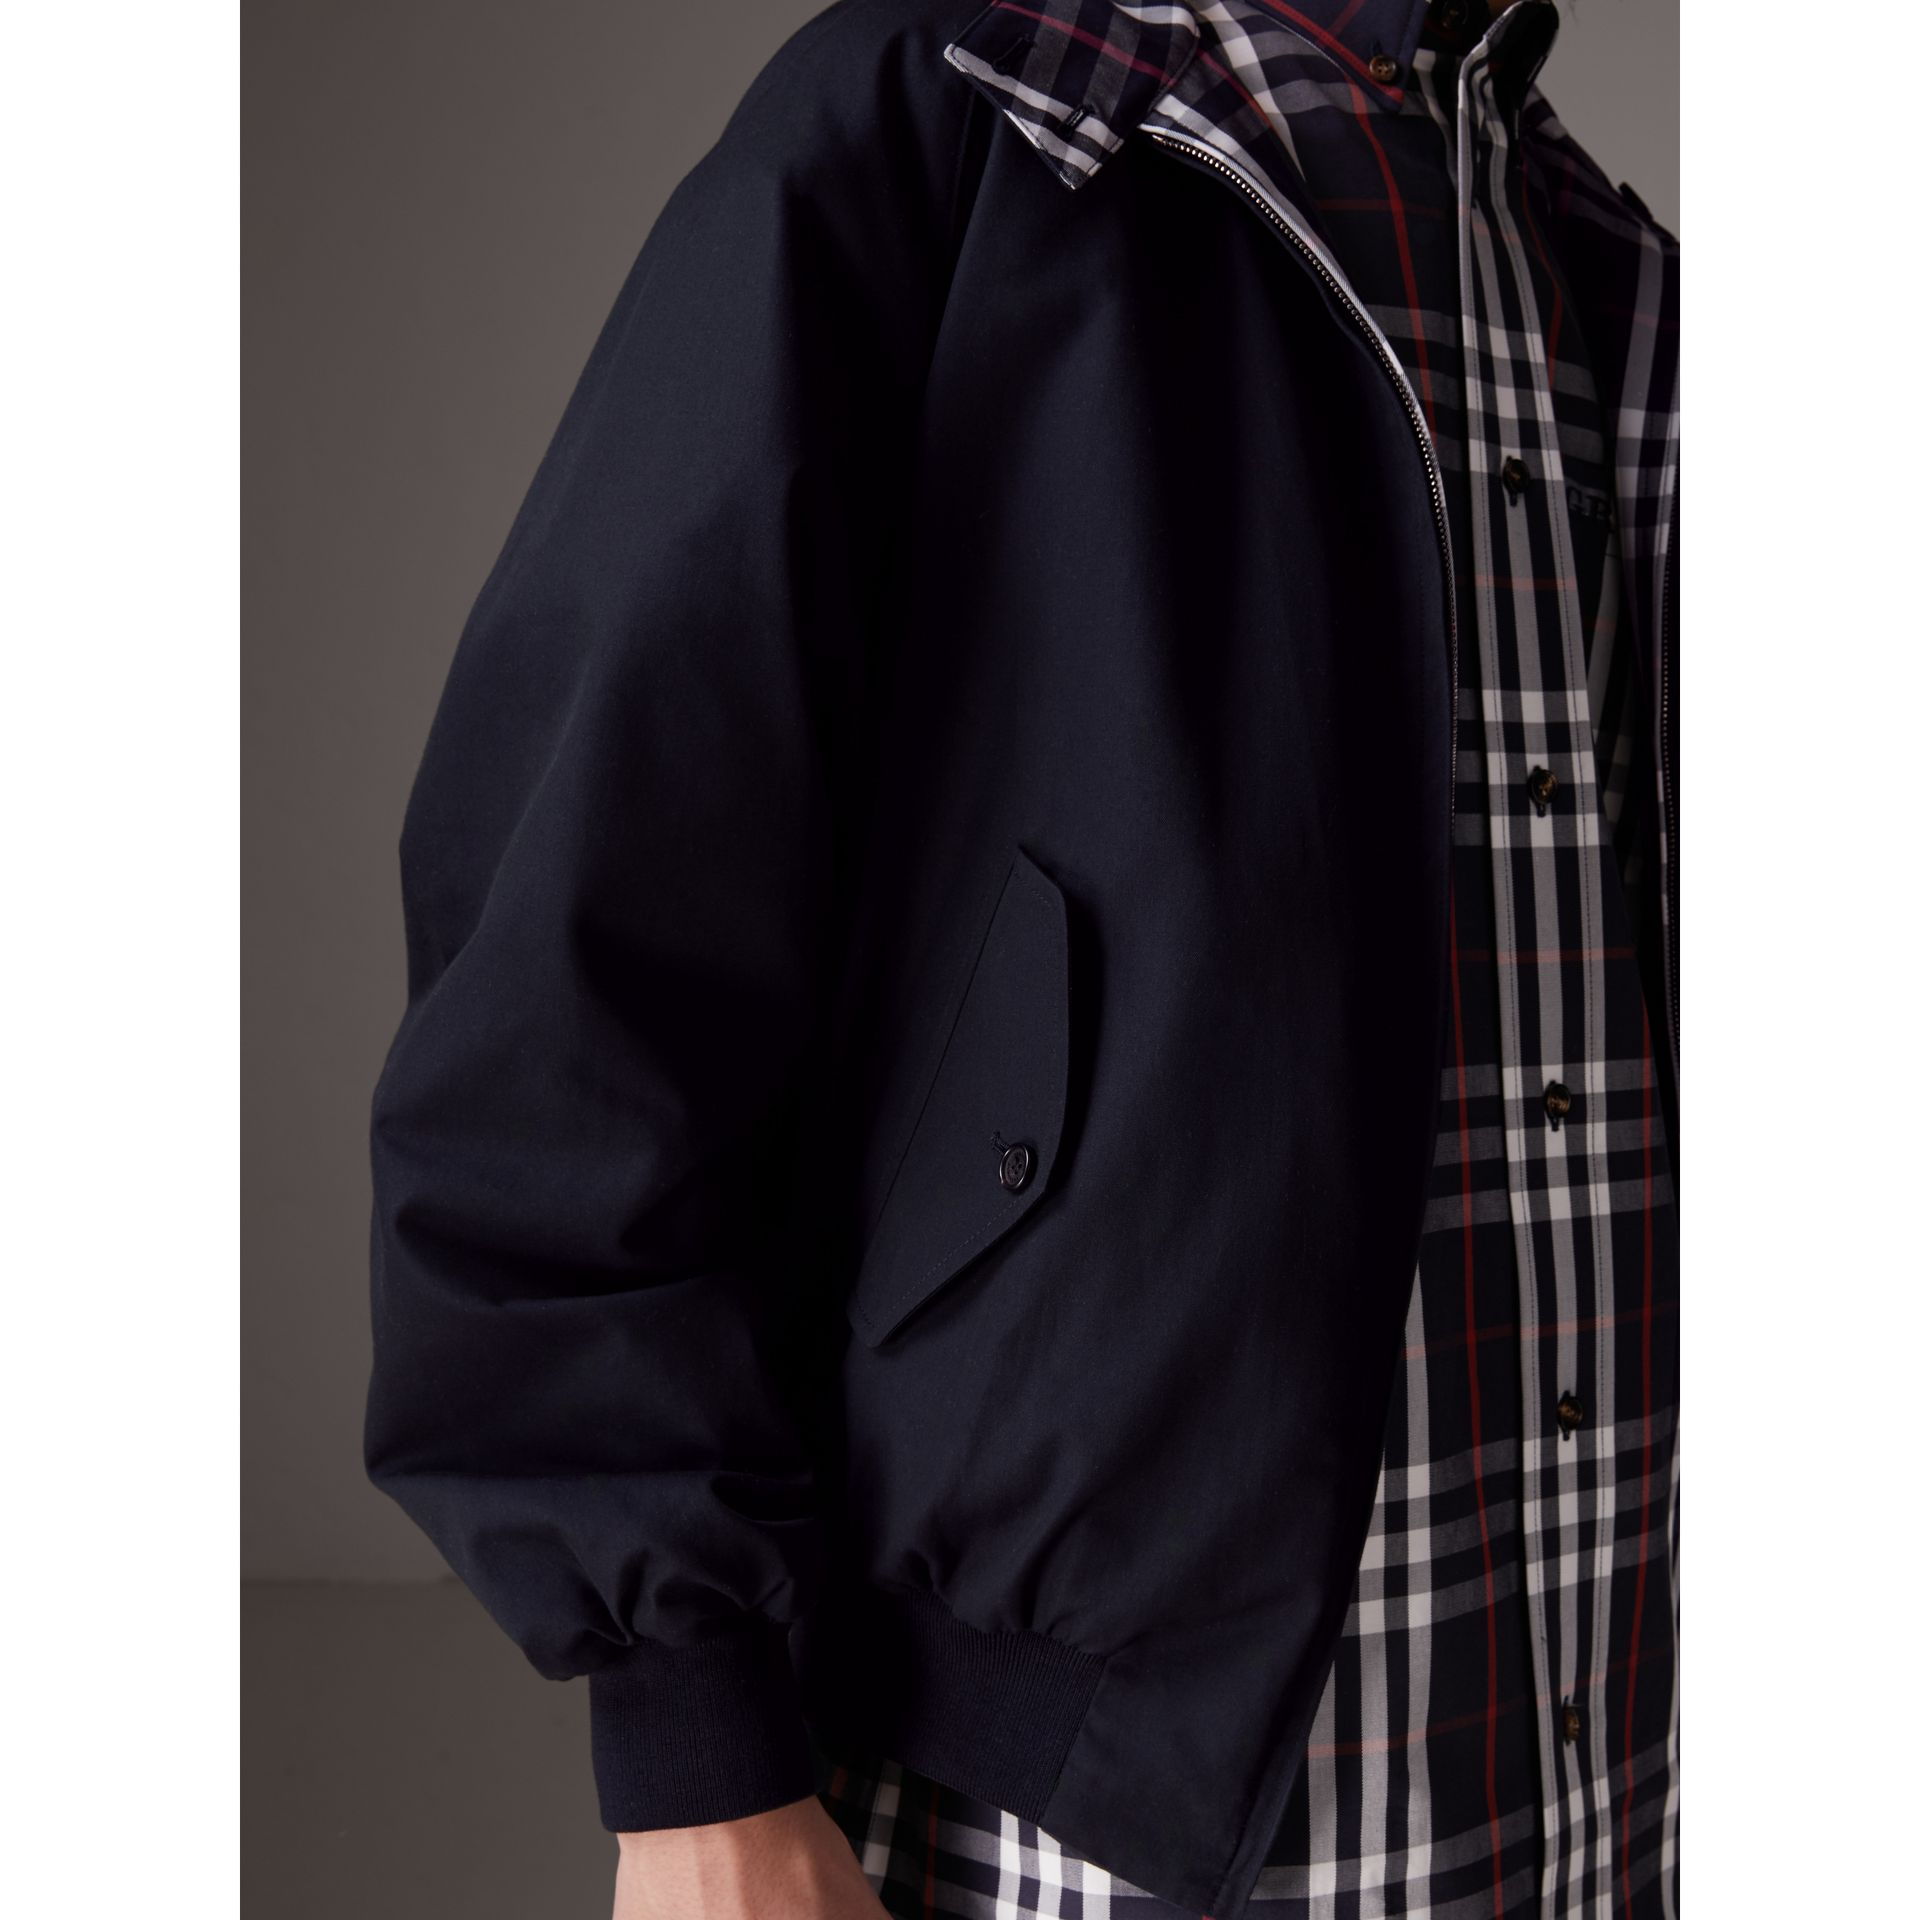 Gosha x Burberry Reversible Harrington Jacket in Navy | Burberry United Kingdom - gallery image 1